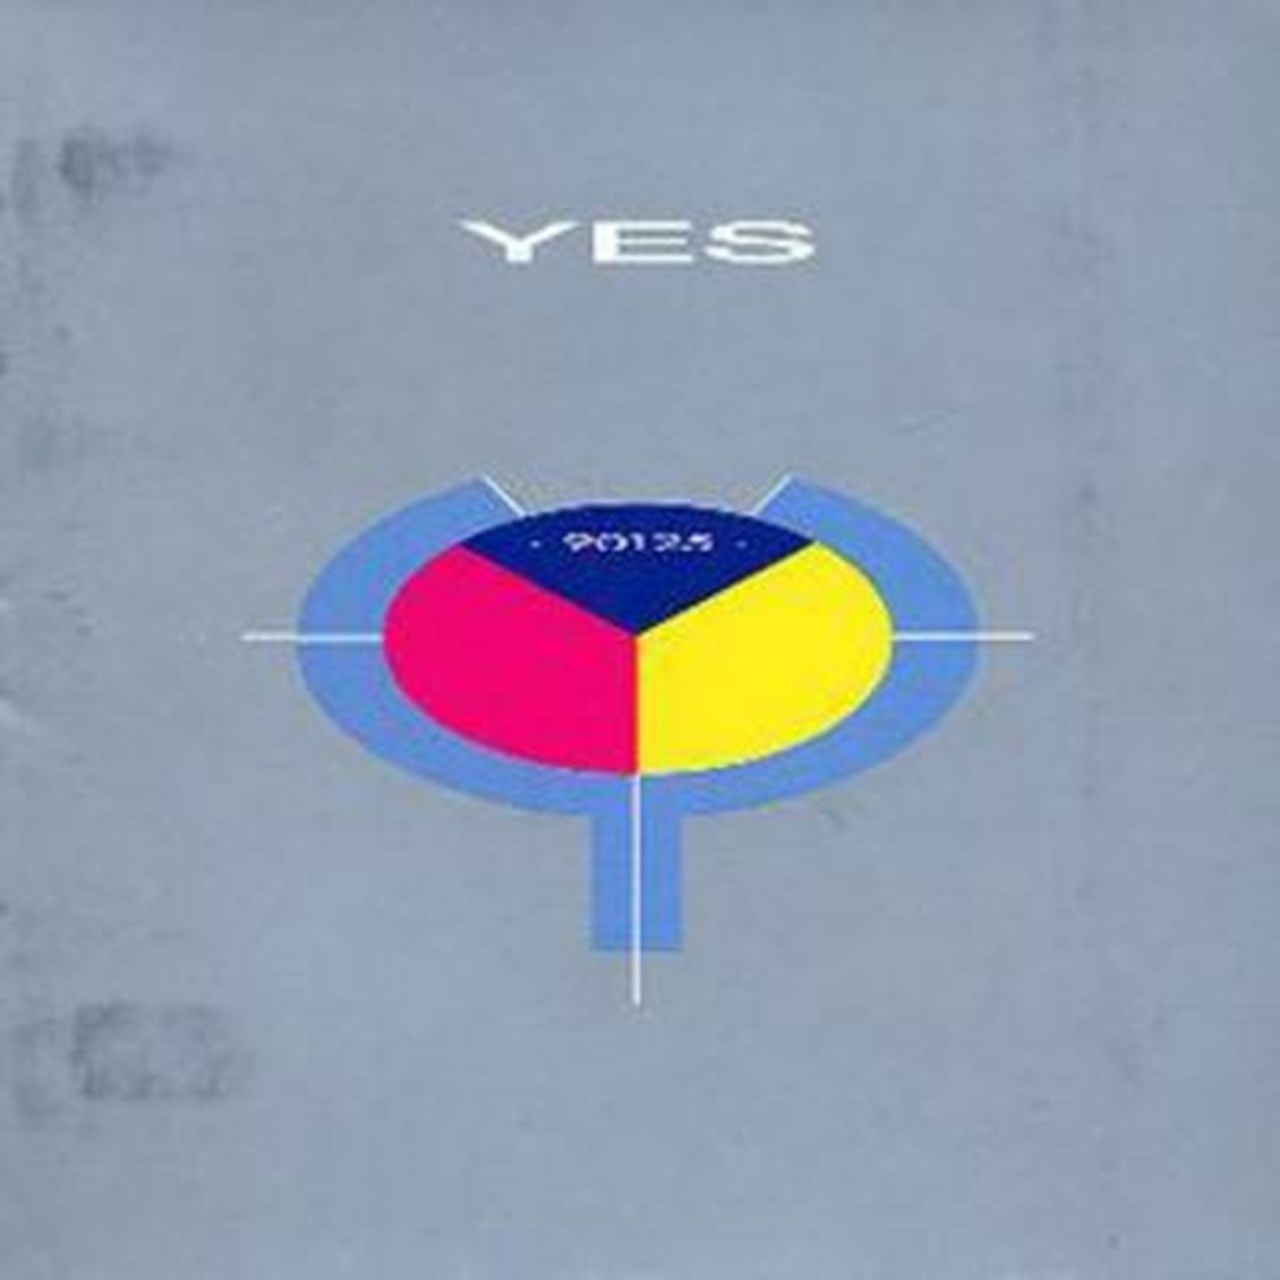 90125 (Remastered and Expanded) - 1